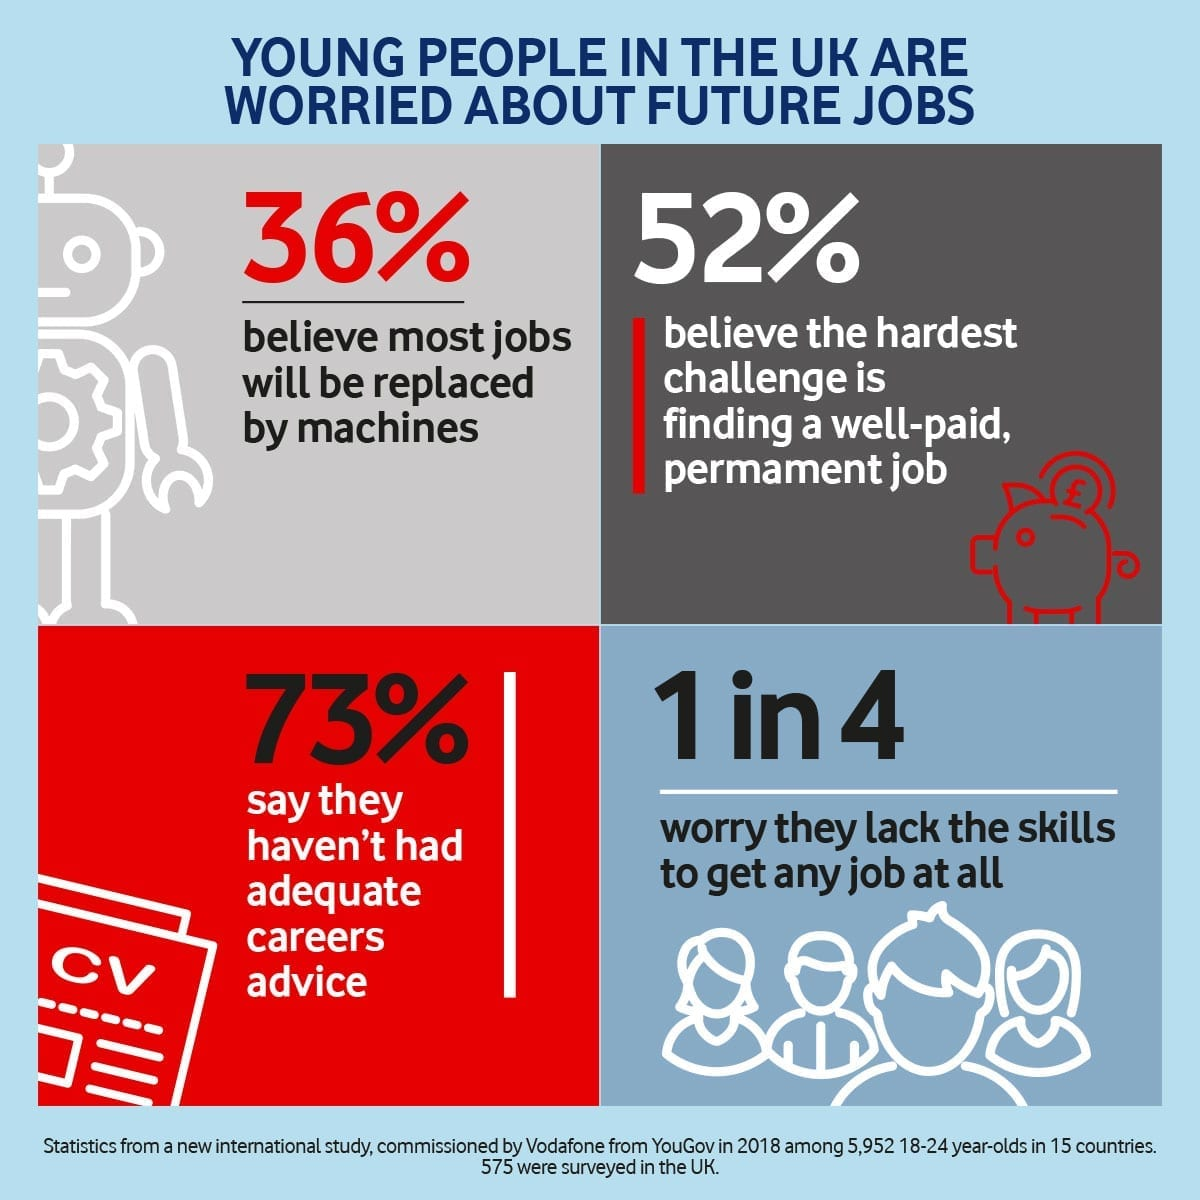 Young people are right to be concerned about a digital future in the workplace